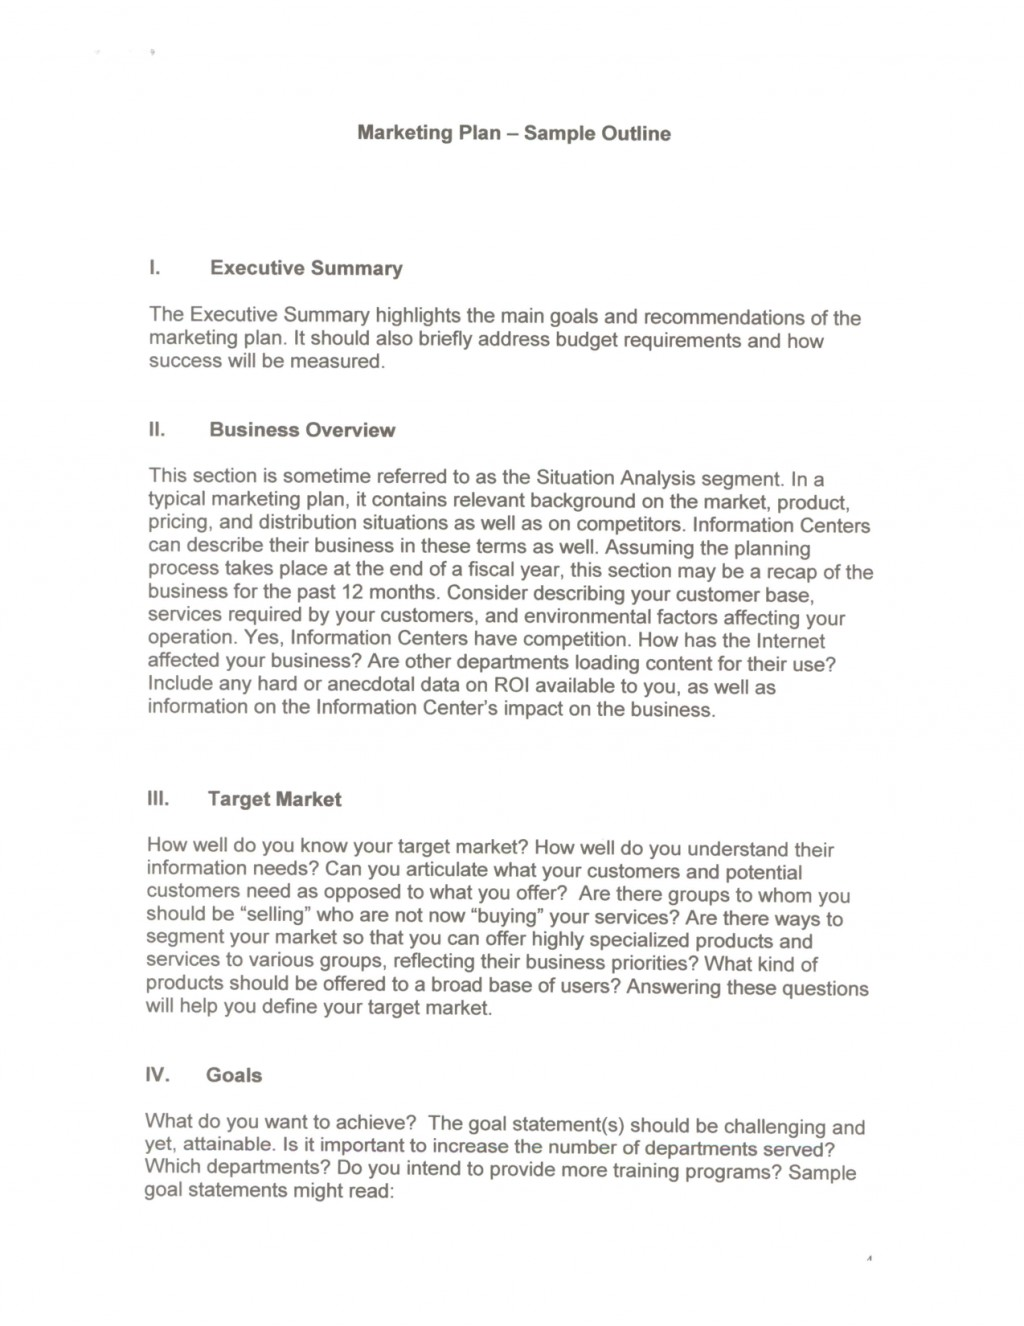 013 Executive Summary Research Paper Example Marketing Plan 384040 Unforgettable Large